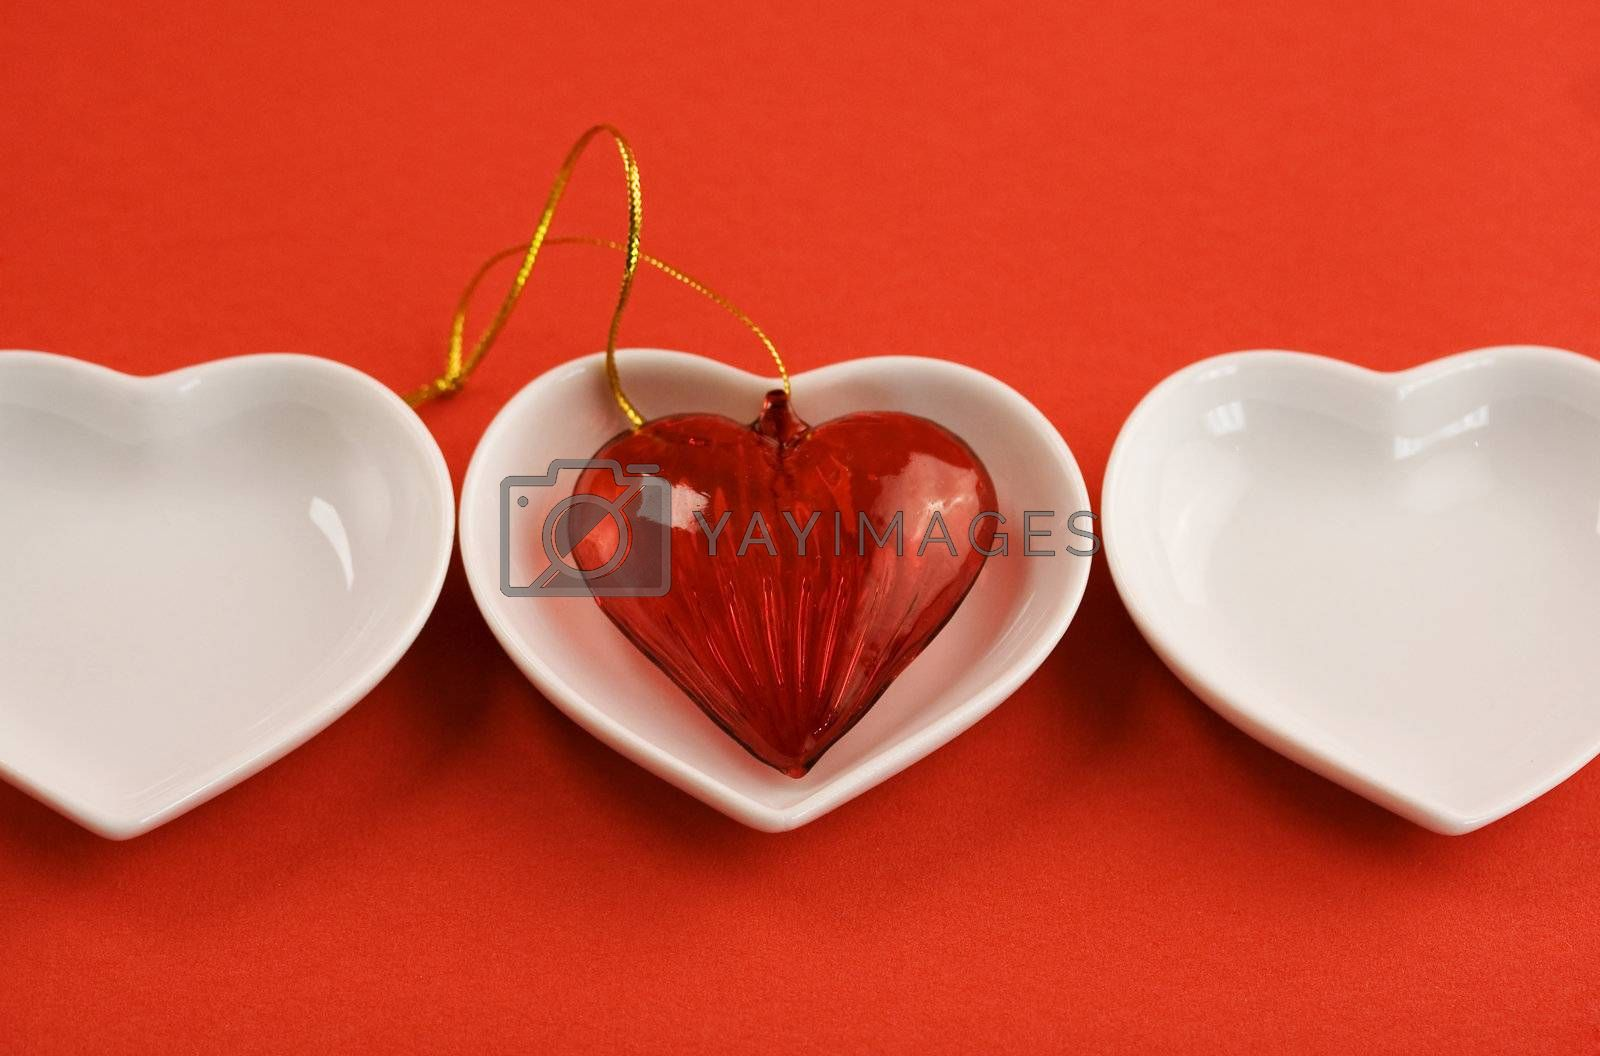 Red heart and heart shaped plates